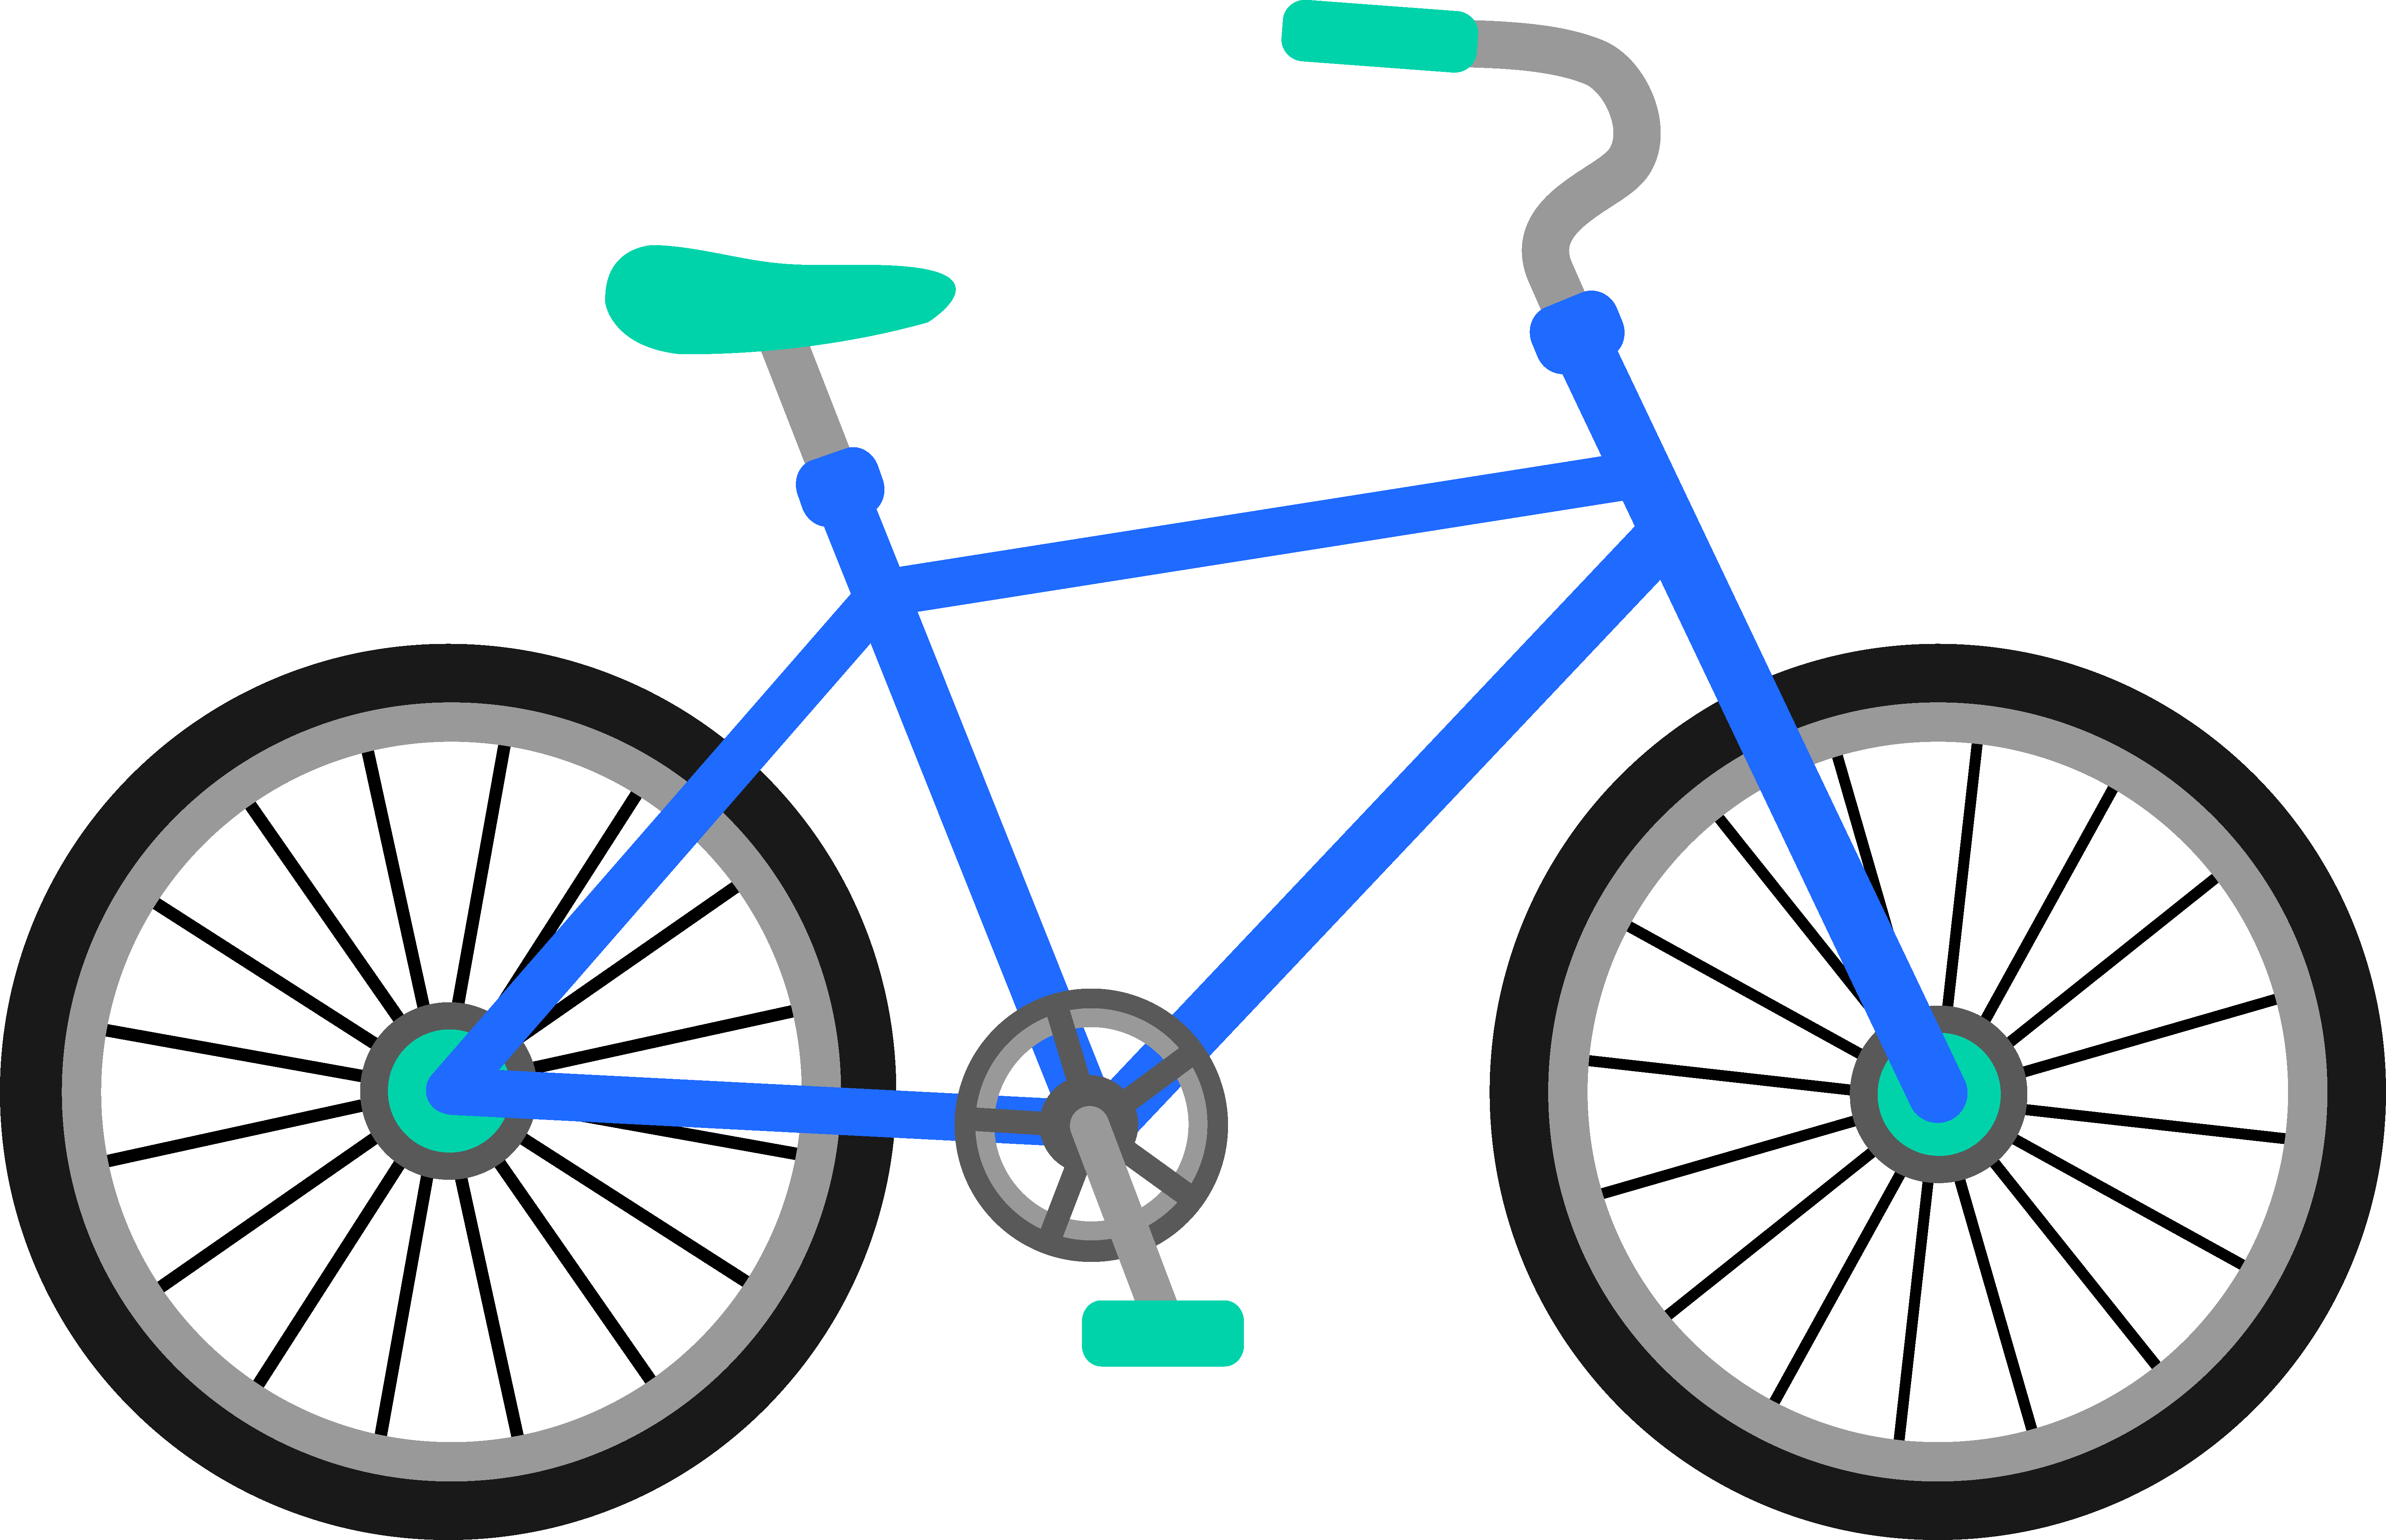 Bike clipart images download banner free library Clip Art: Transportation Bicycle Drawing Clip art - Bike Images png ... banner free library